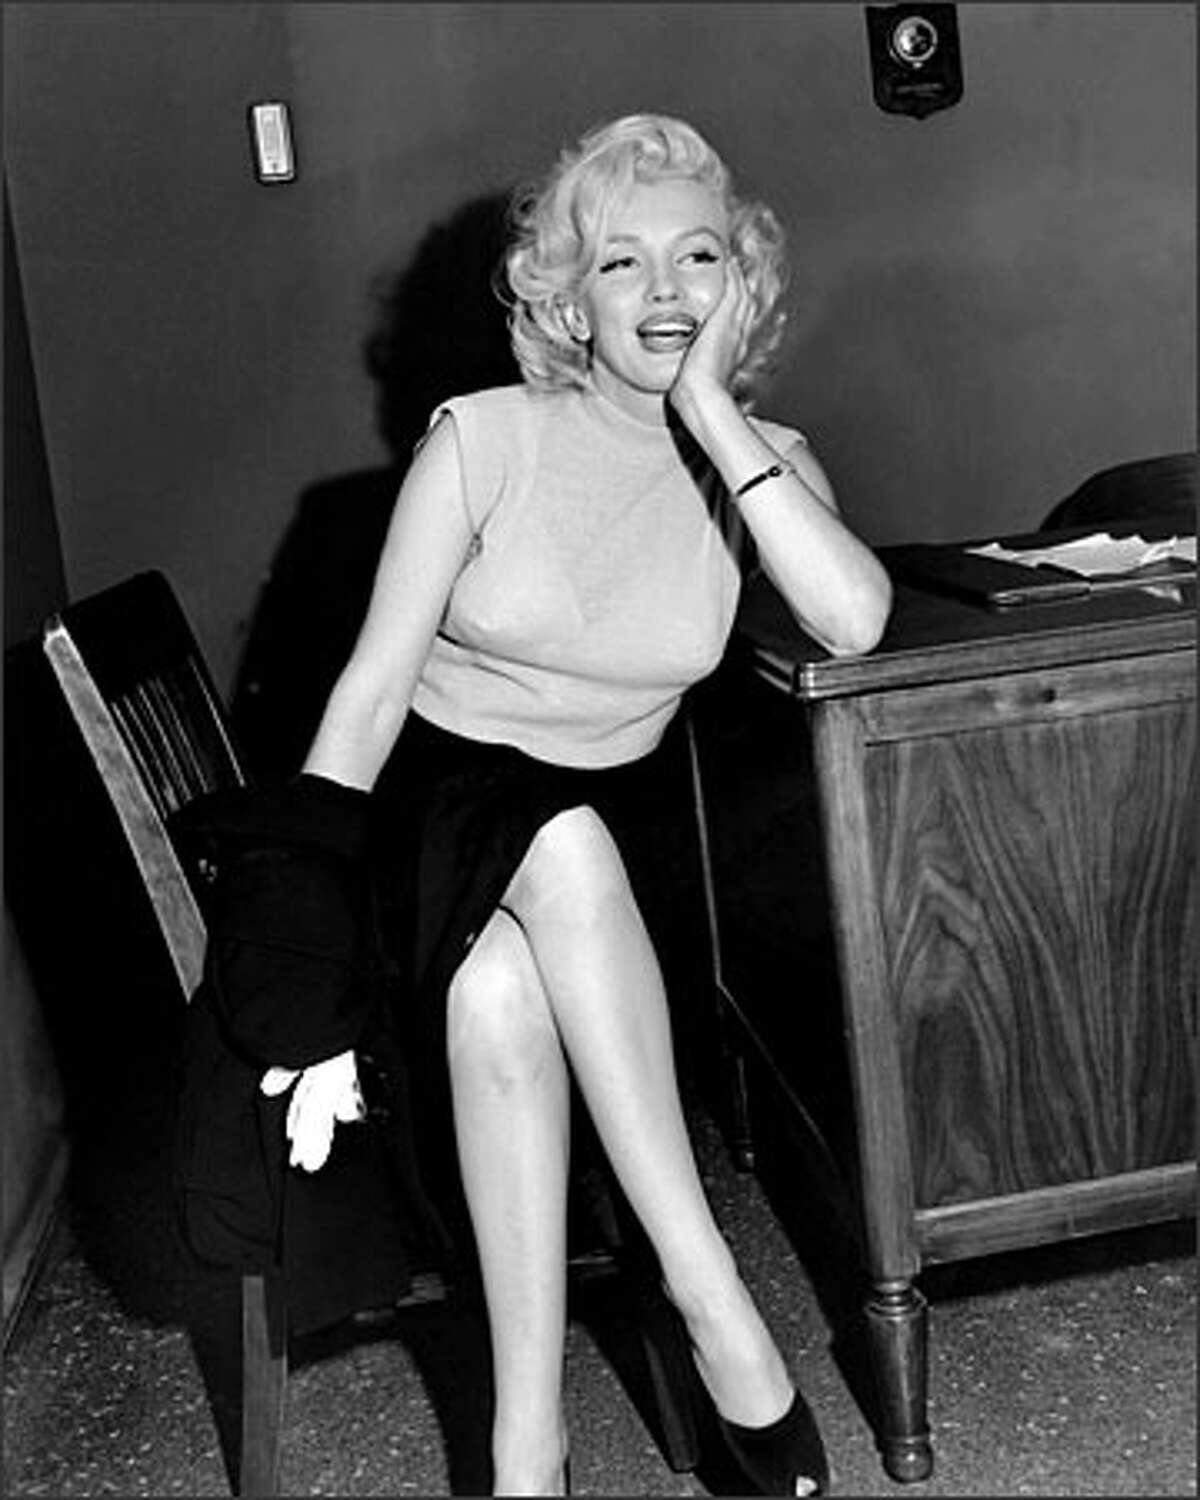 This candid shot of Marilyn Monroe was taken during a visit to Seattle on July 30, 1953. It never appeared in the newspaper, but it continues to provoke memories.